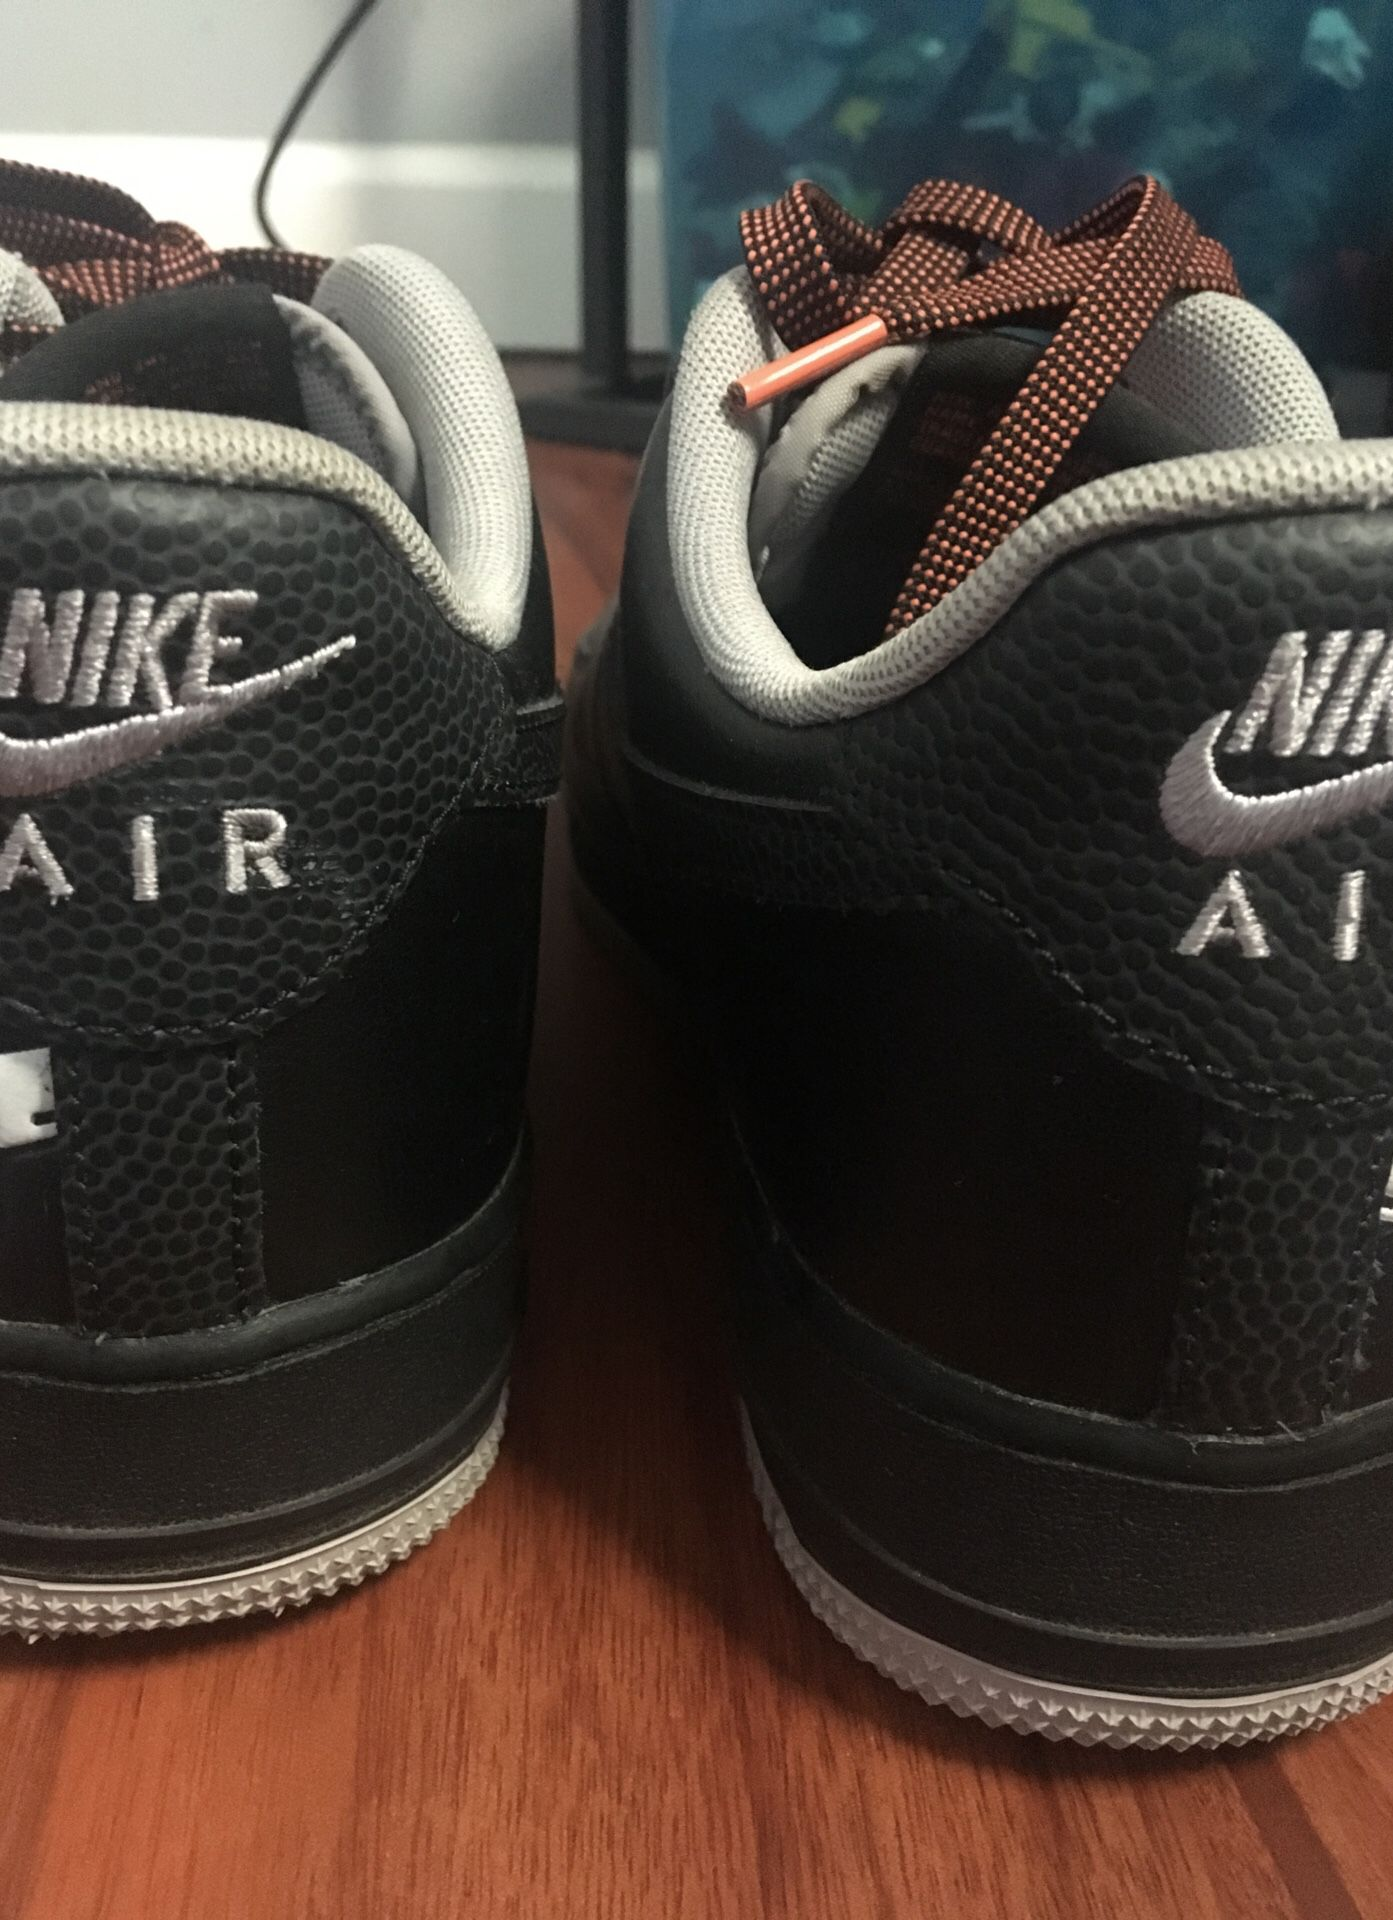 Air Force 1 (Detroit away edition)